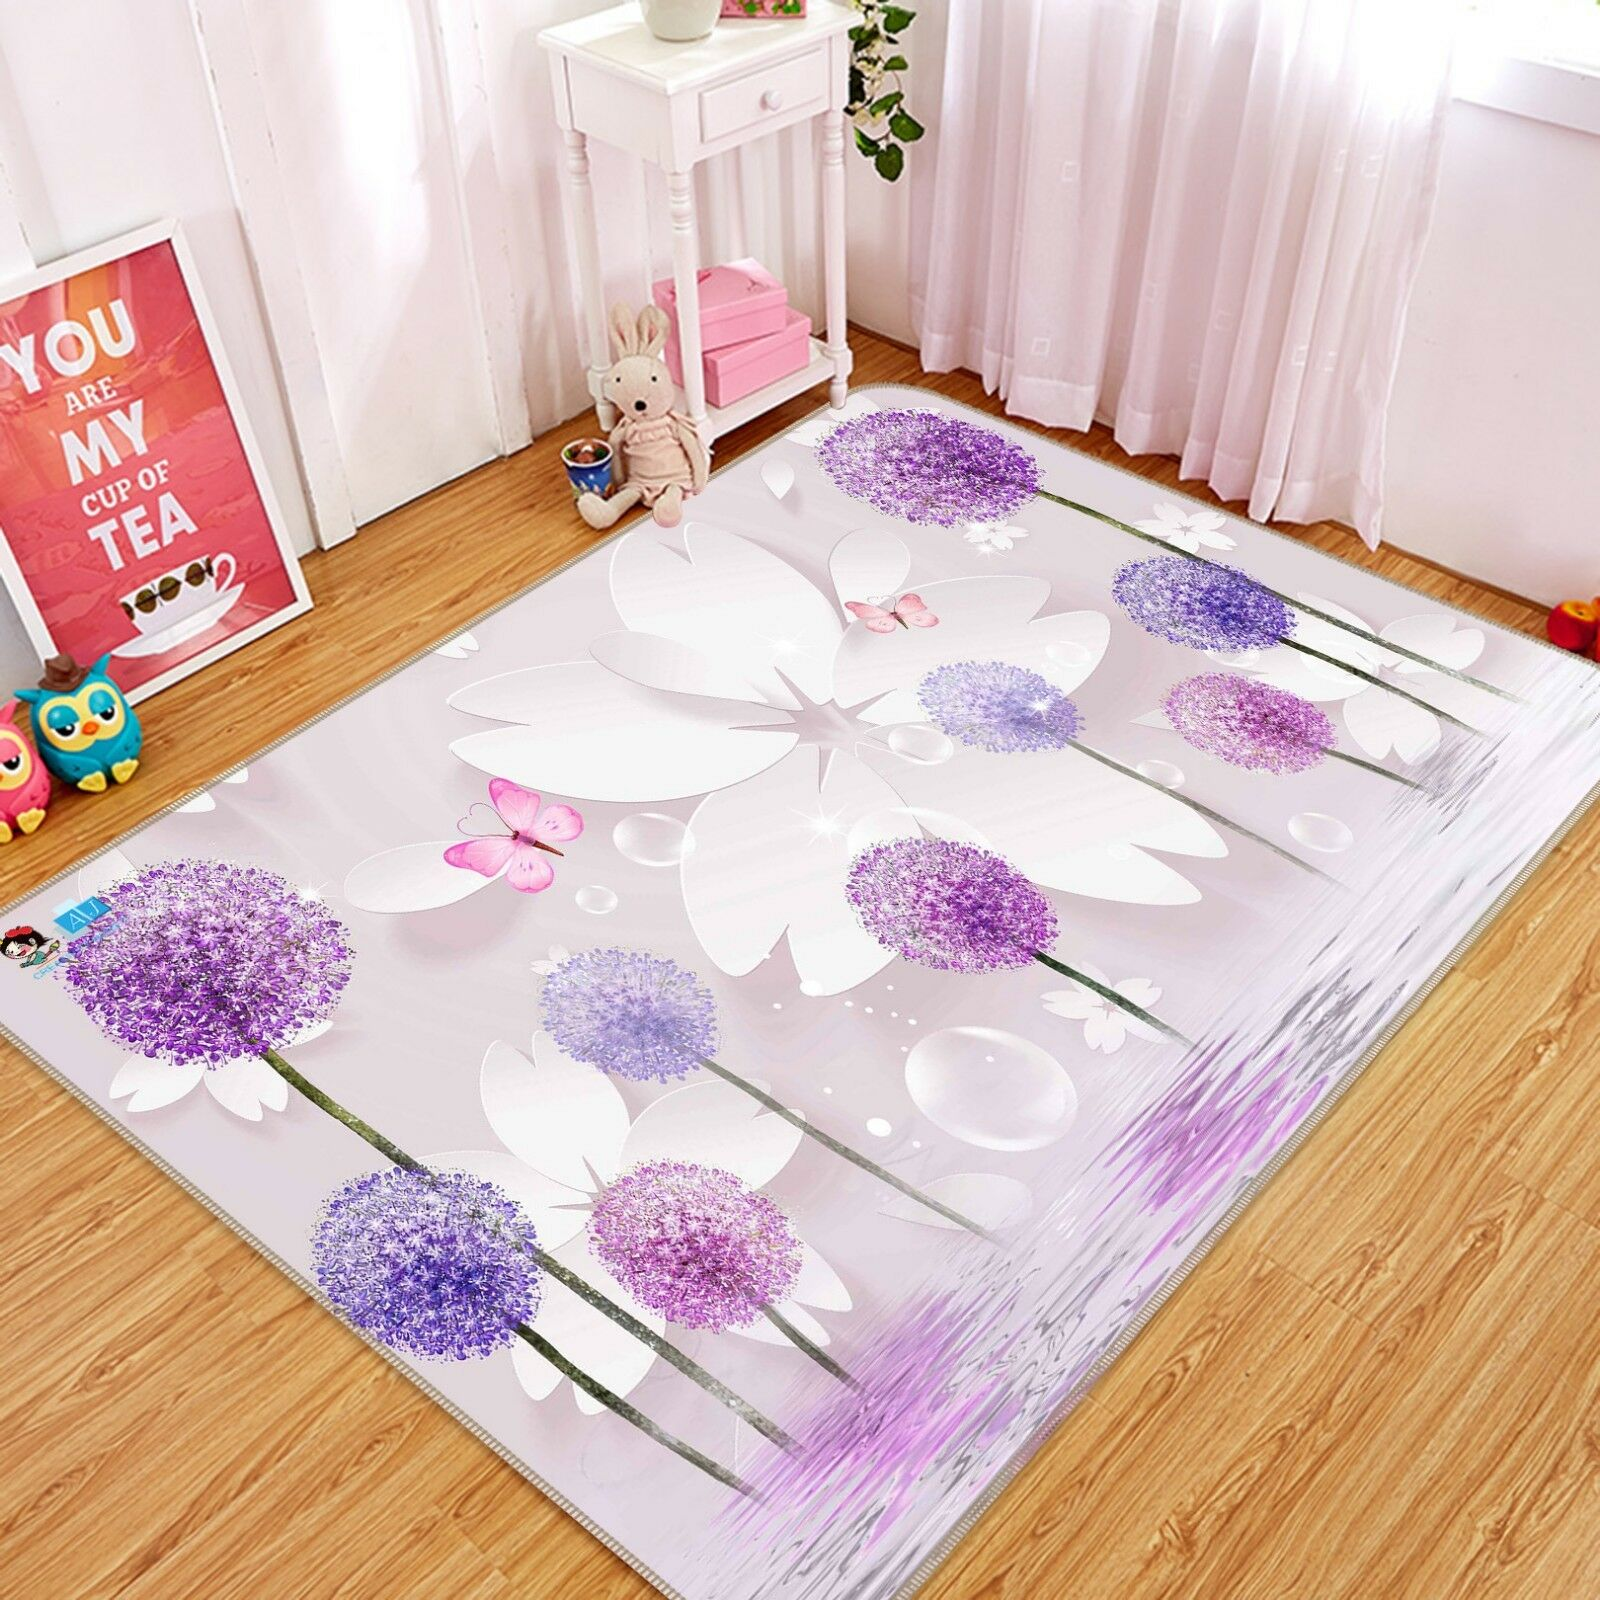 3D Flowers viola 021 Non Slip Rug Mat Quality Elegant Photo Carpet US Cobb